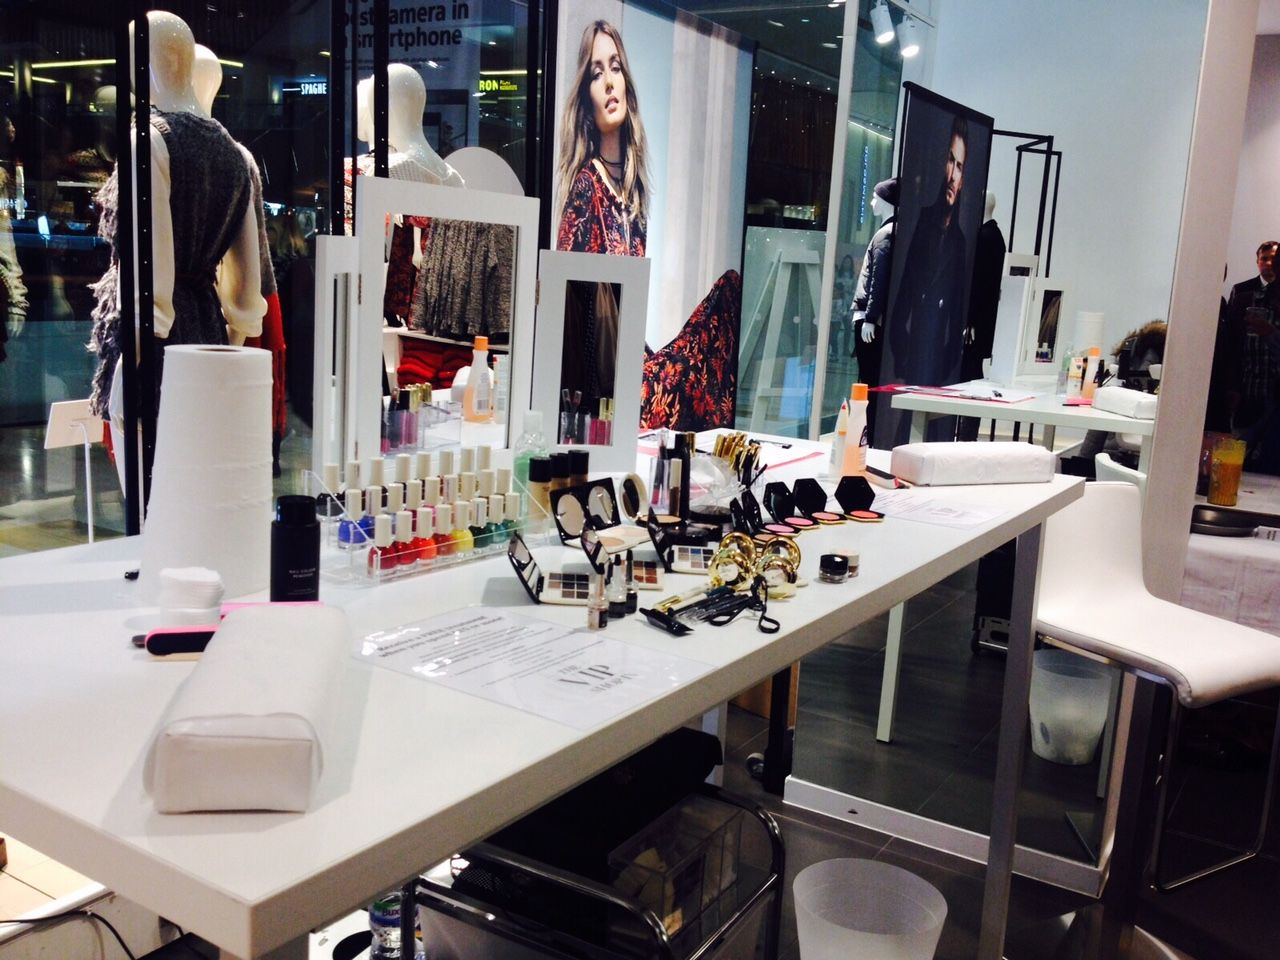 Hm Beauty Tour 15 Locations Nail And Make Up Activation